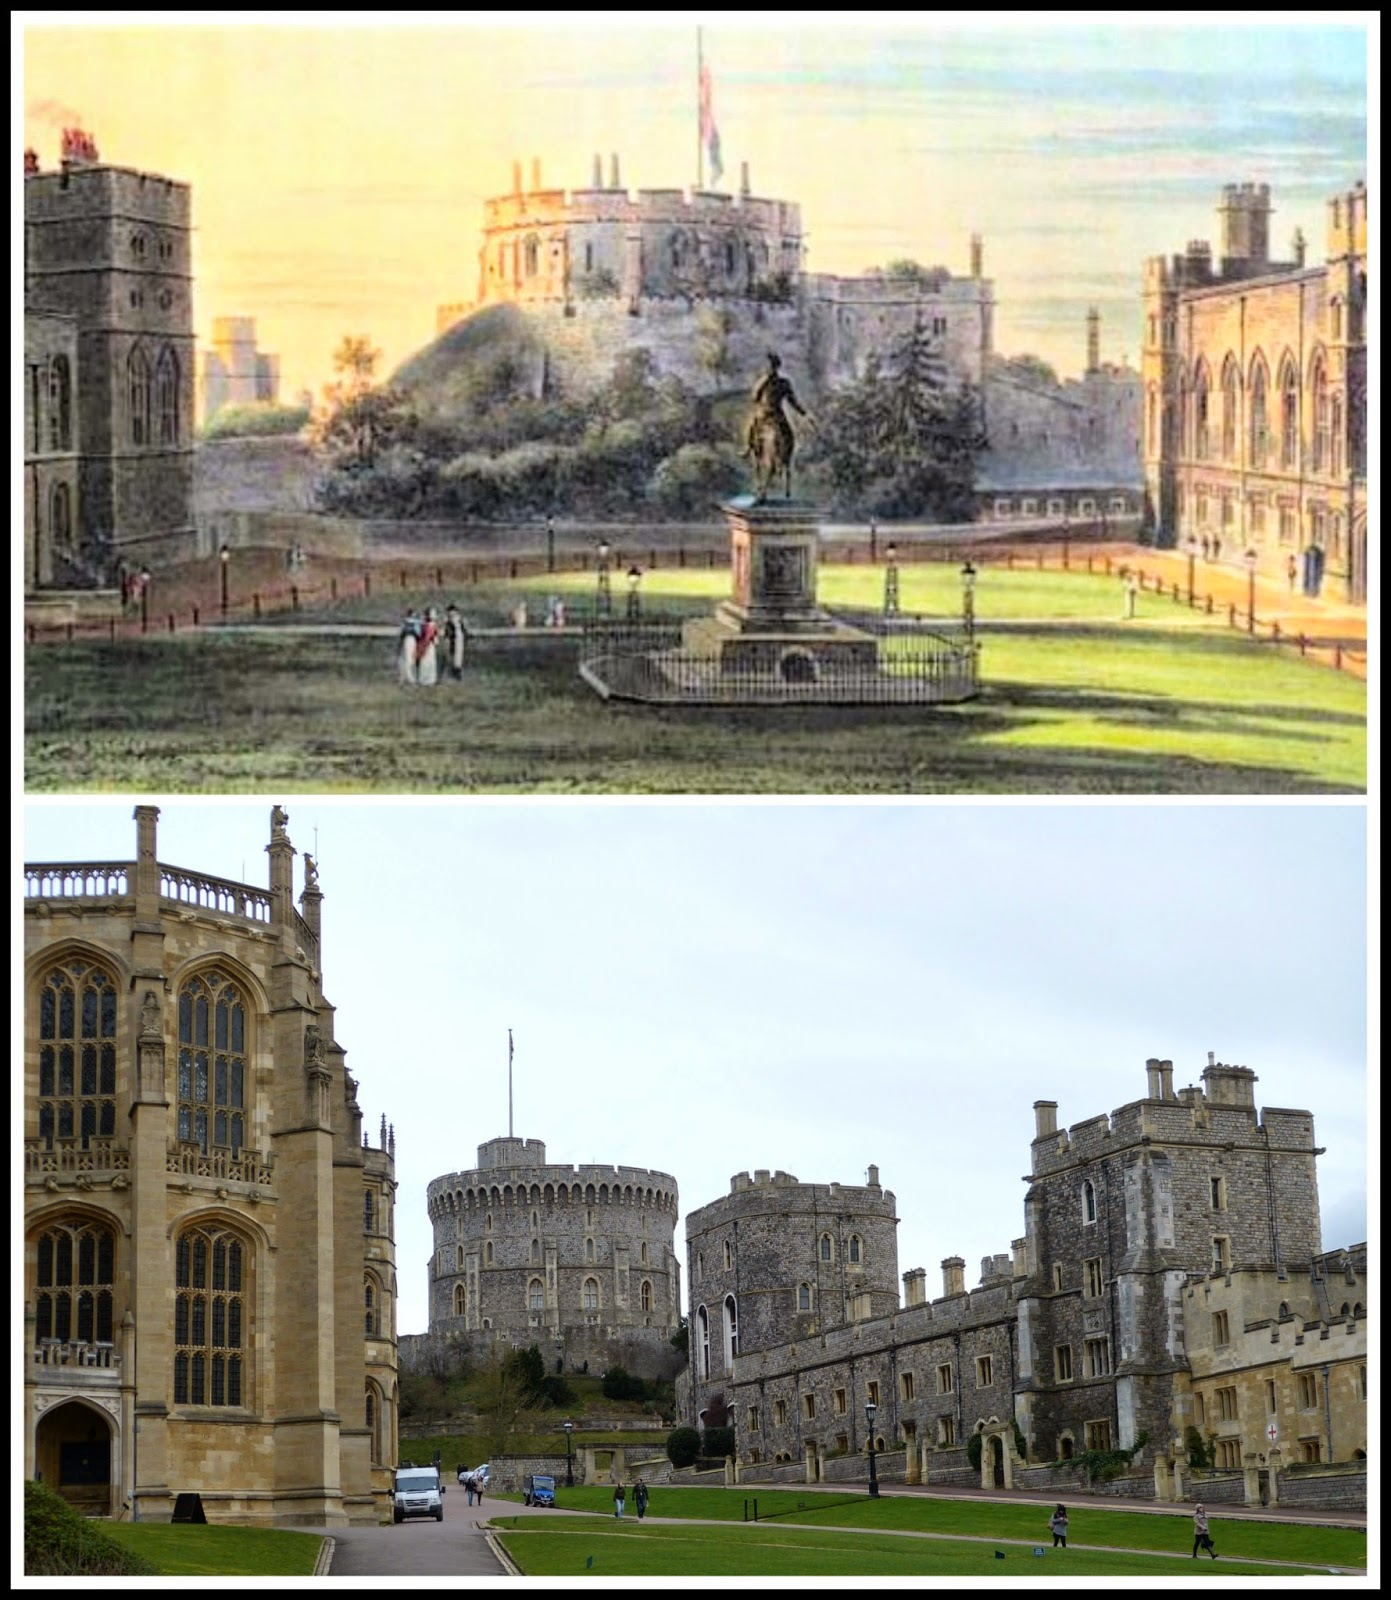 Top: The Upper Ward, Windsor Castle from   The History of the Royal Residences by WH Pyne (1819)  Bottom: The Lower Ward, Windsor Castle today © Andrew Knowles